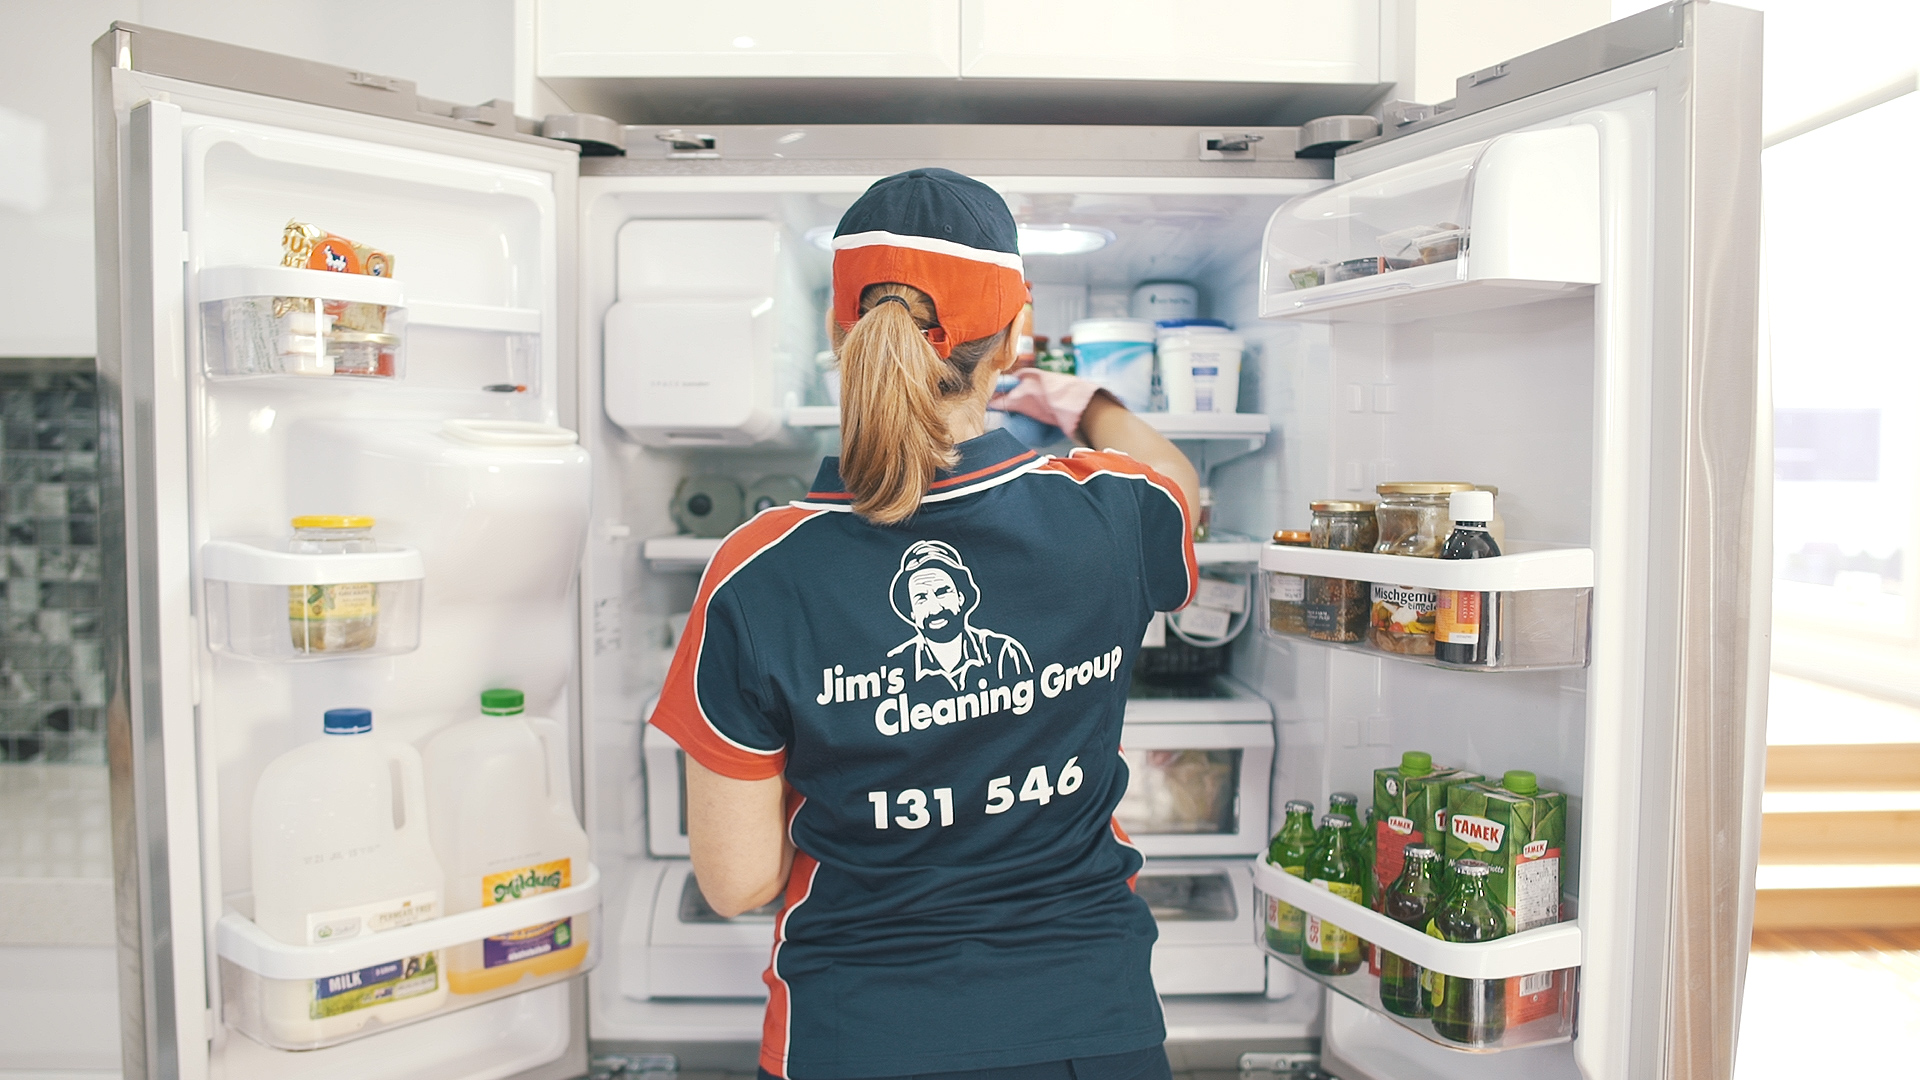 Jim's Cleaning Brookvale - Ingleside, NSW 2101 - (01) 3154 1546 | ShowMeLocal.com